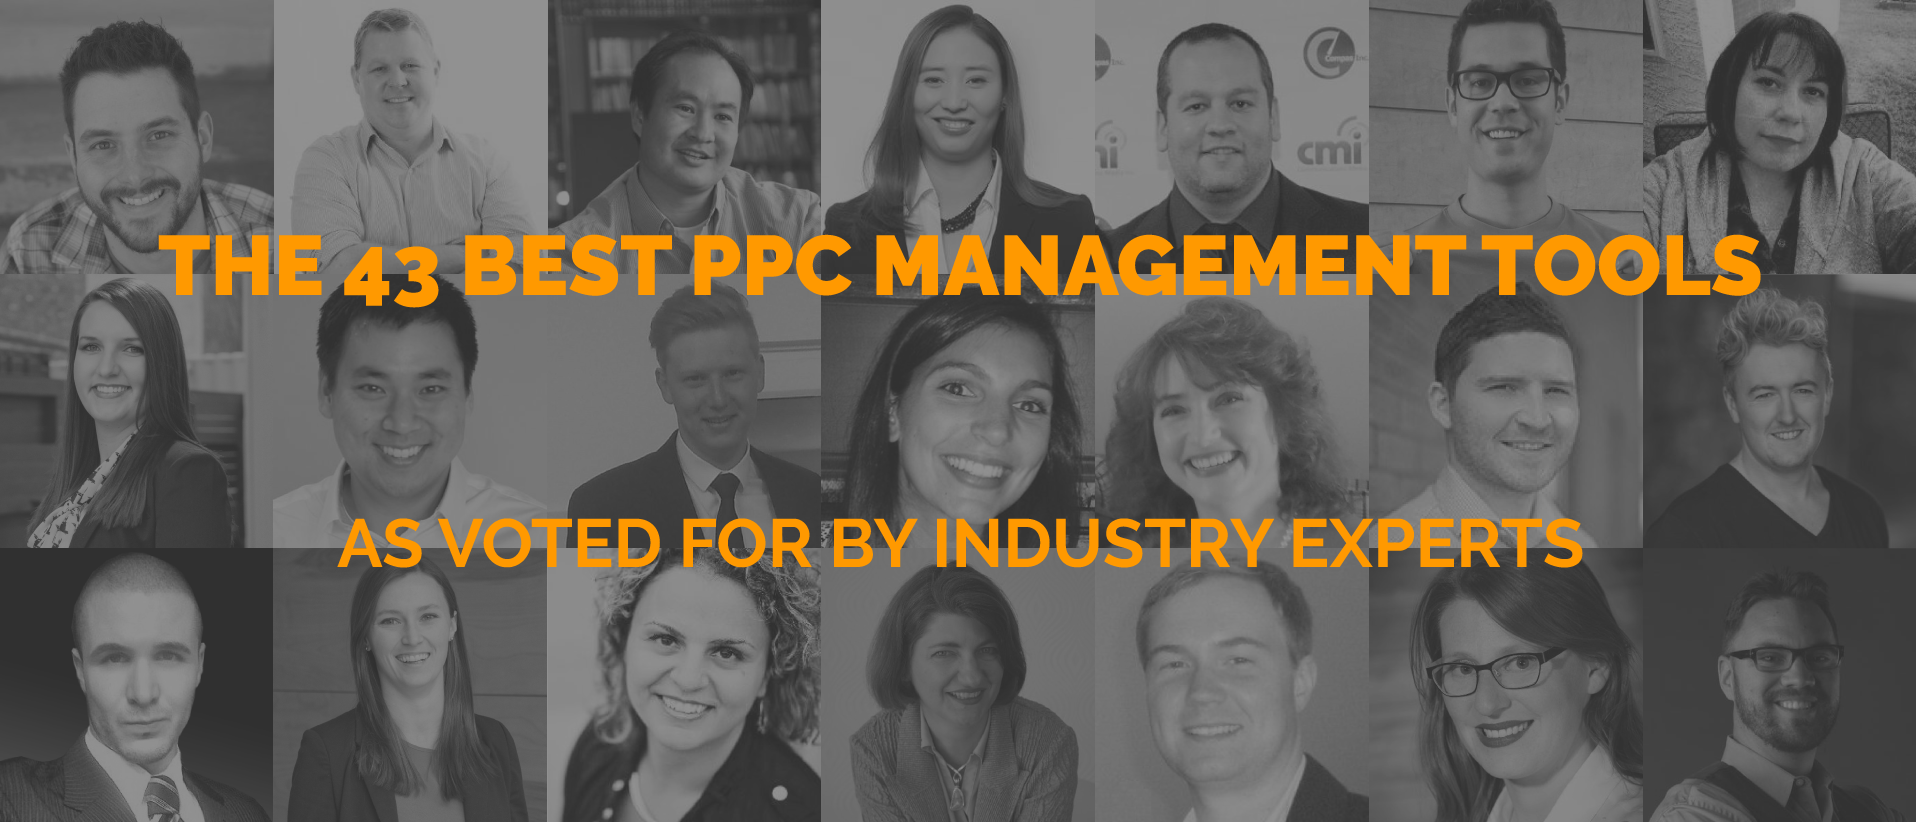 experts best ppc management tool